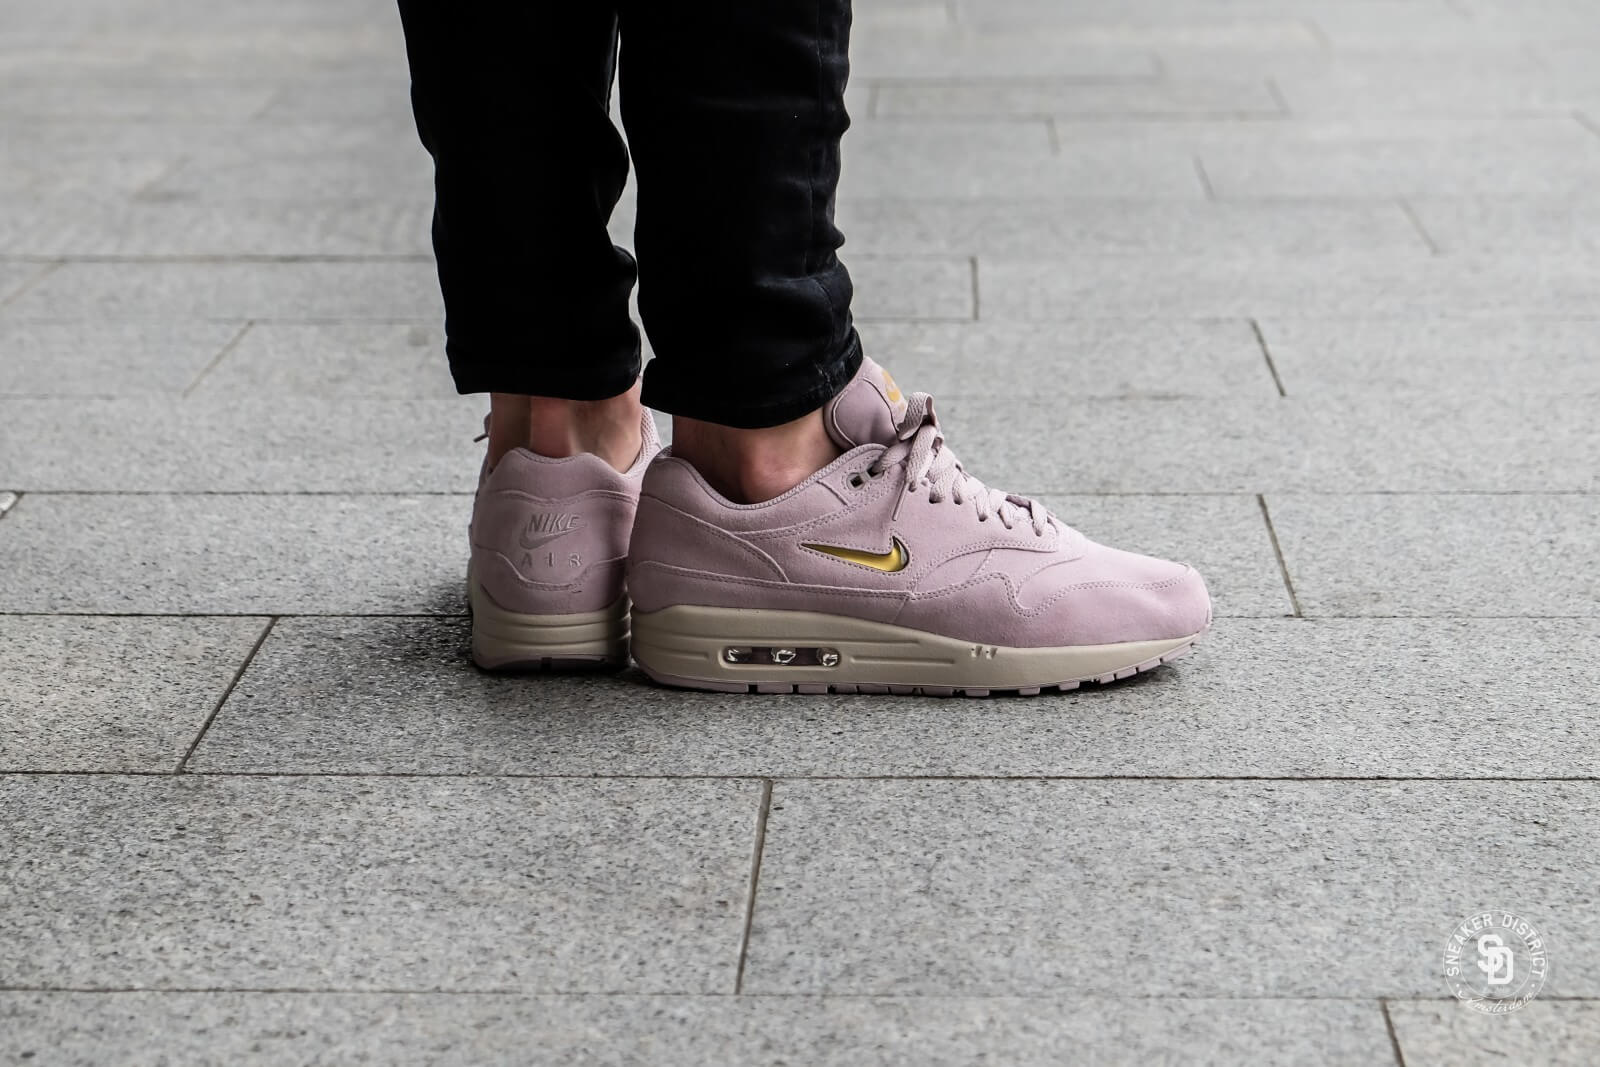 nike air max rose gold kopen